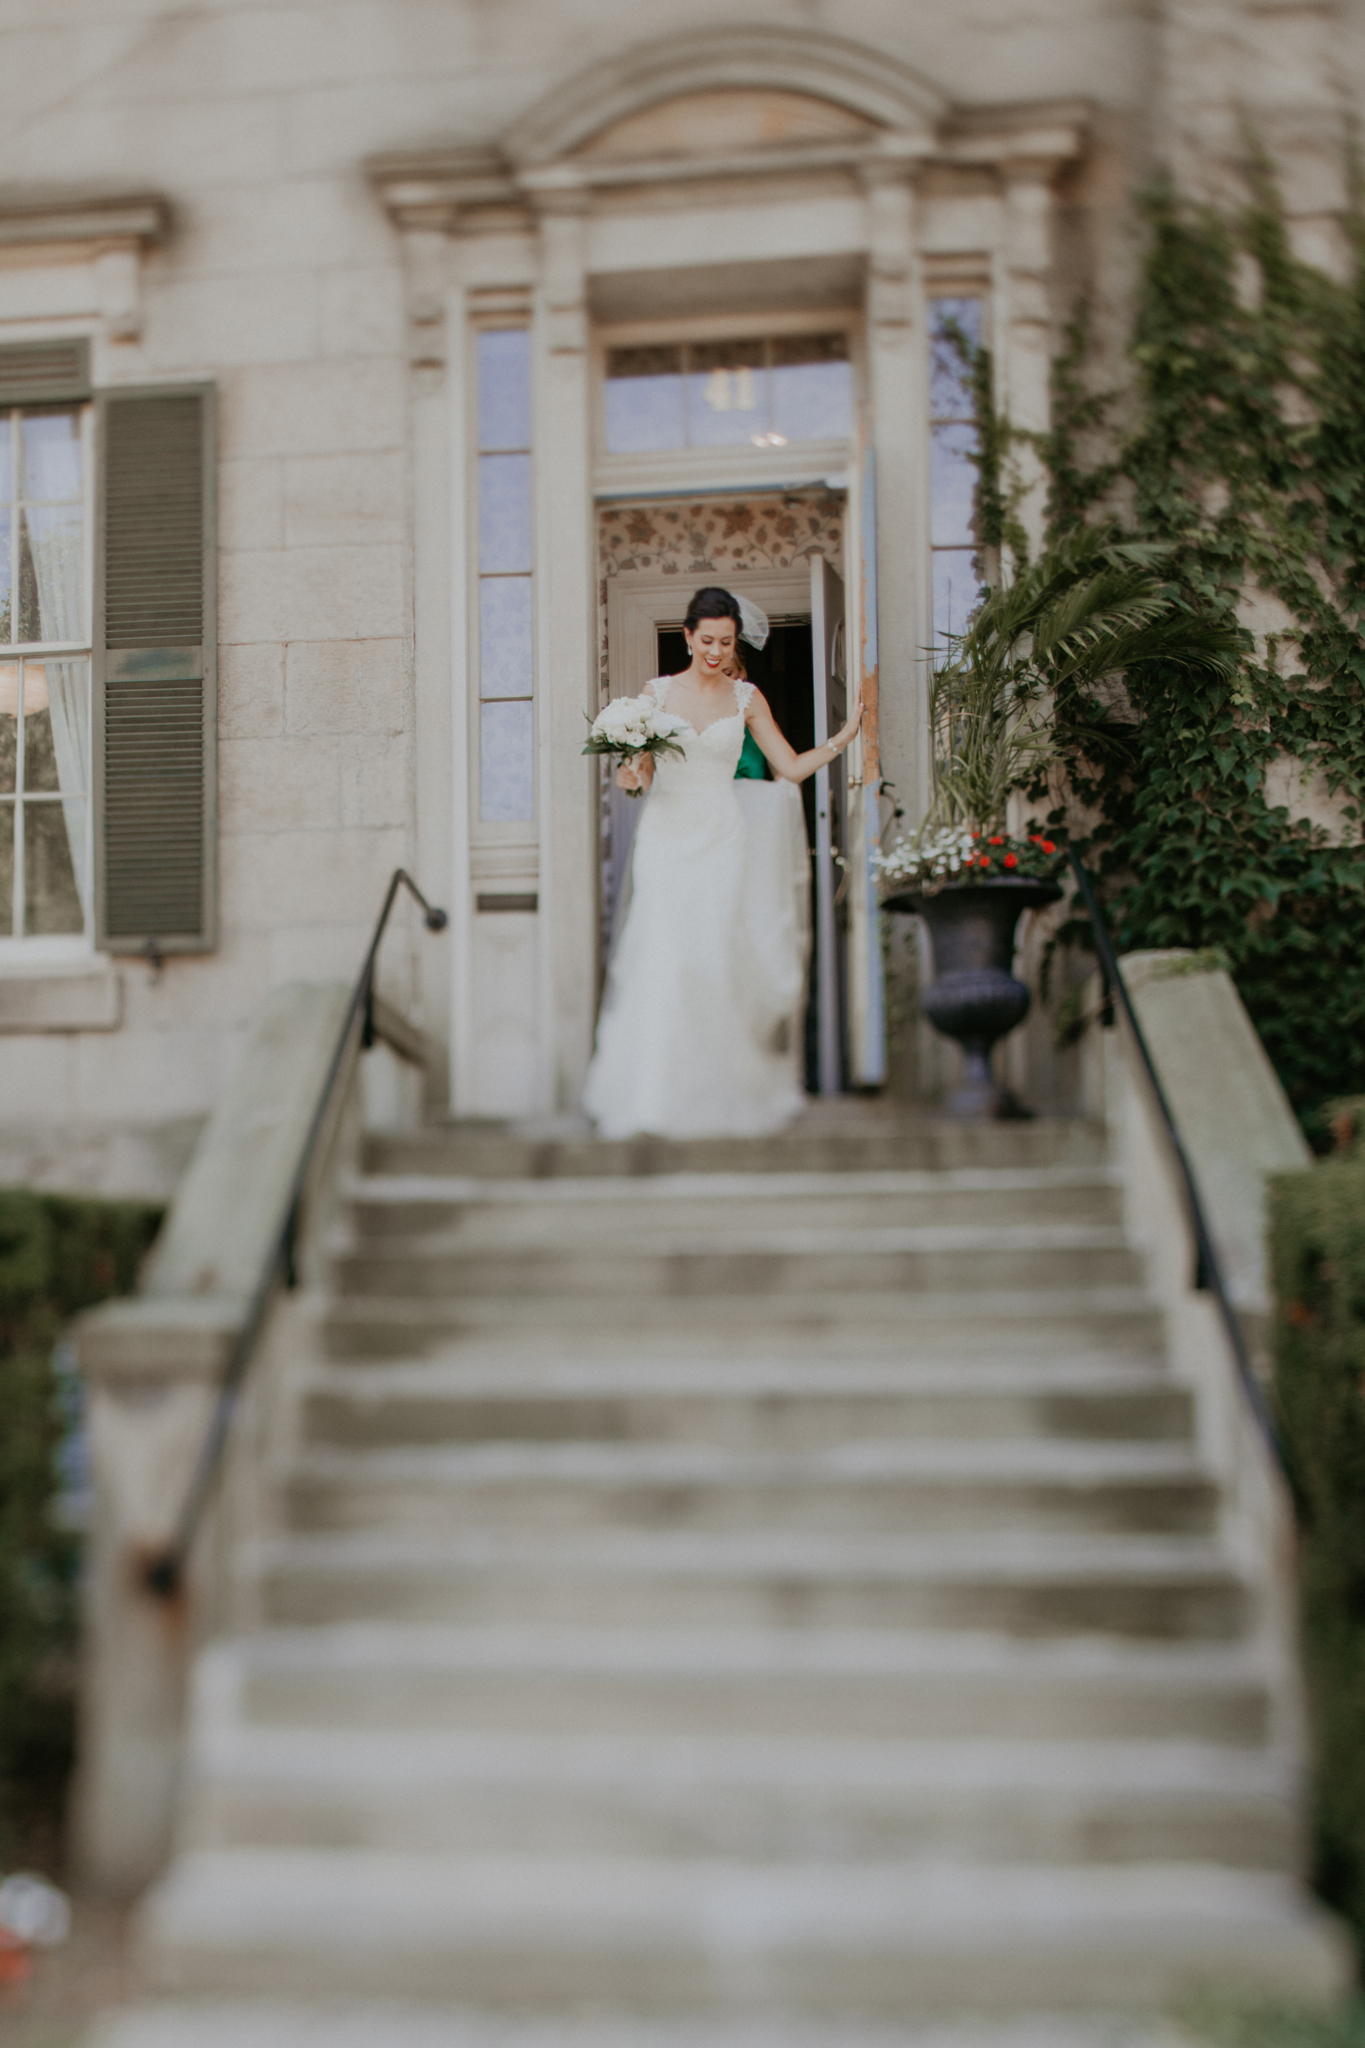 Bride walking down steps with bridesmaid on wedding day